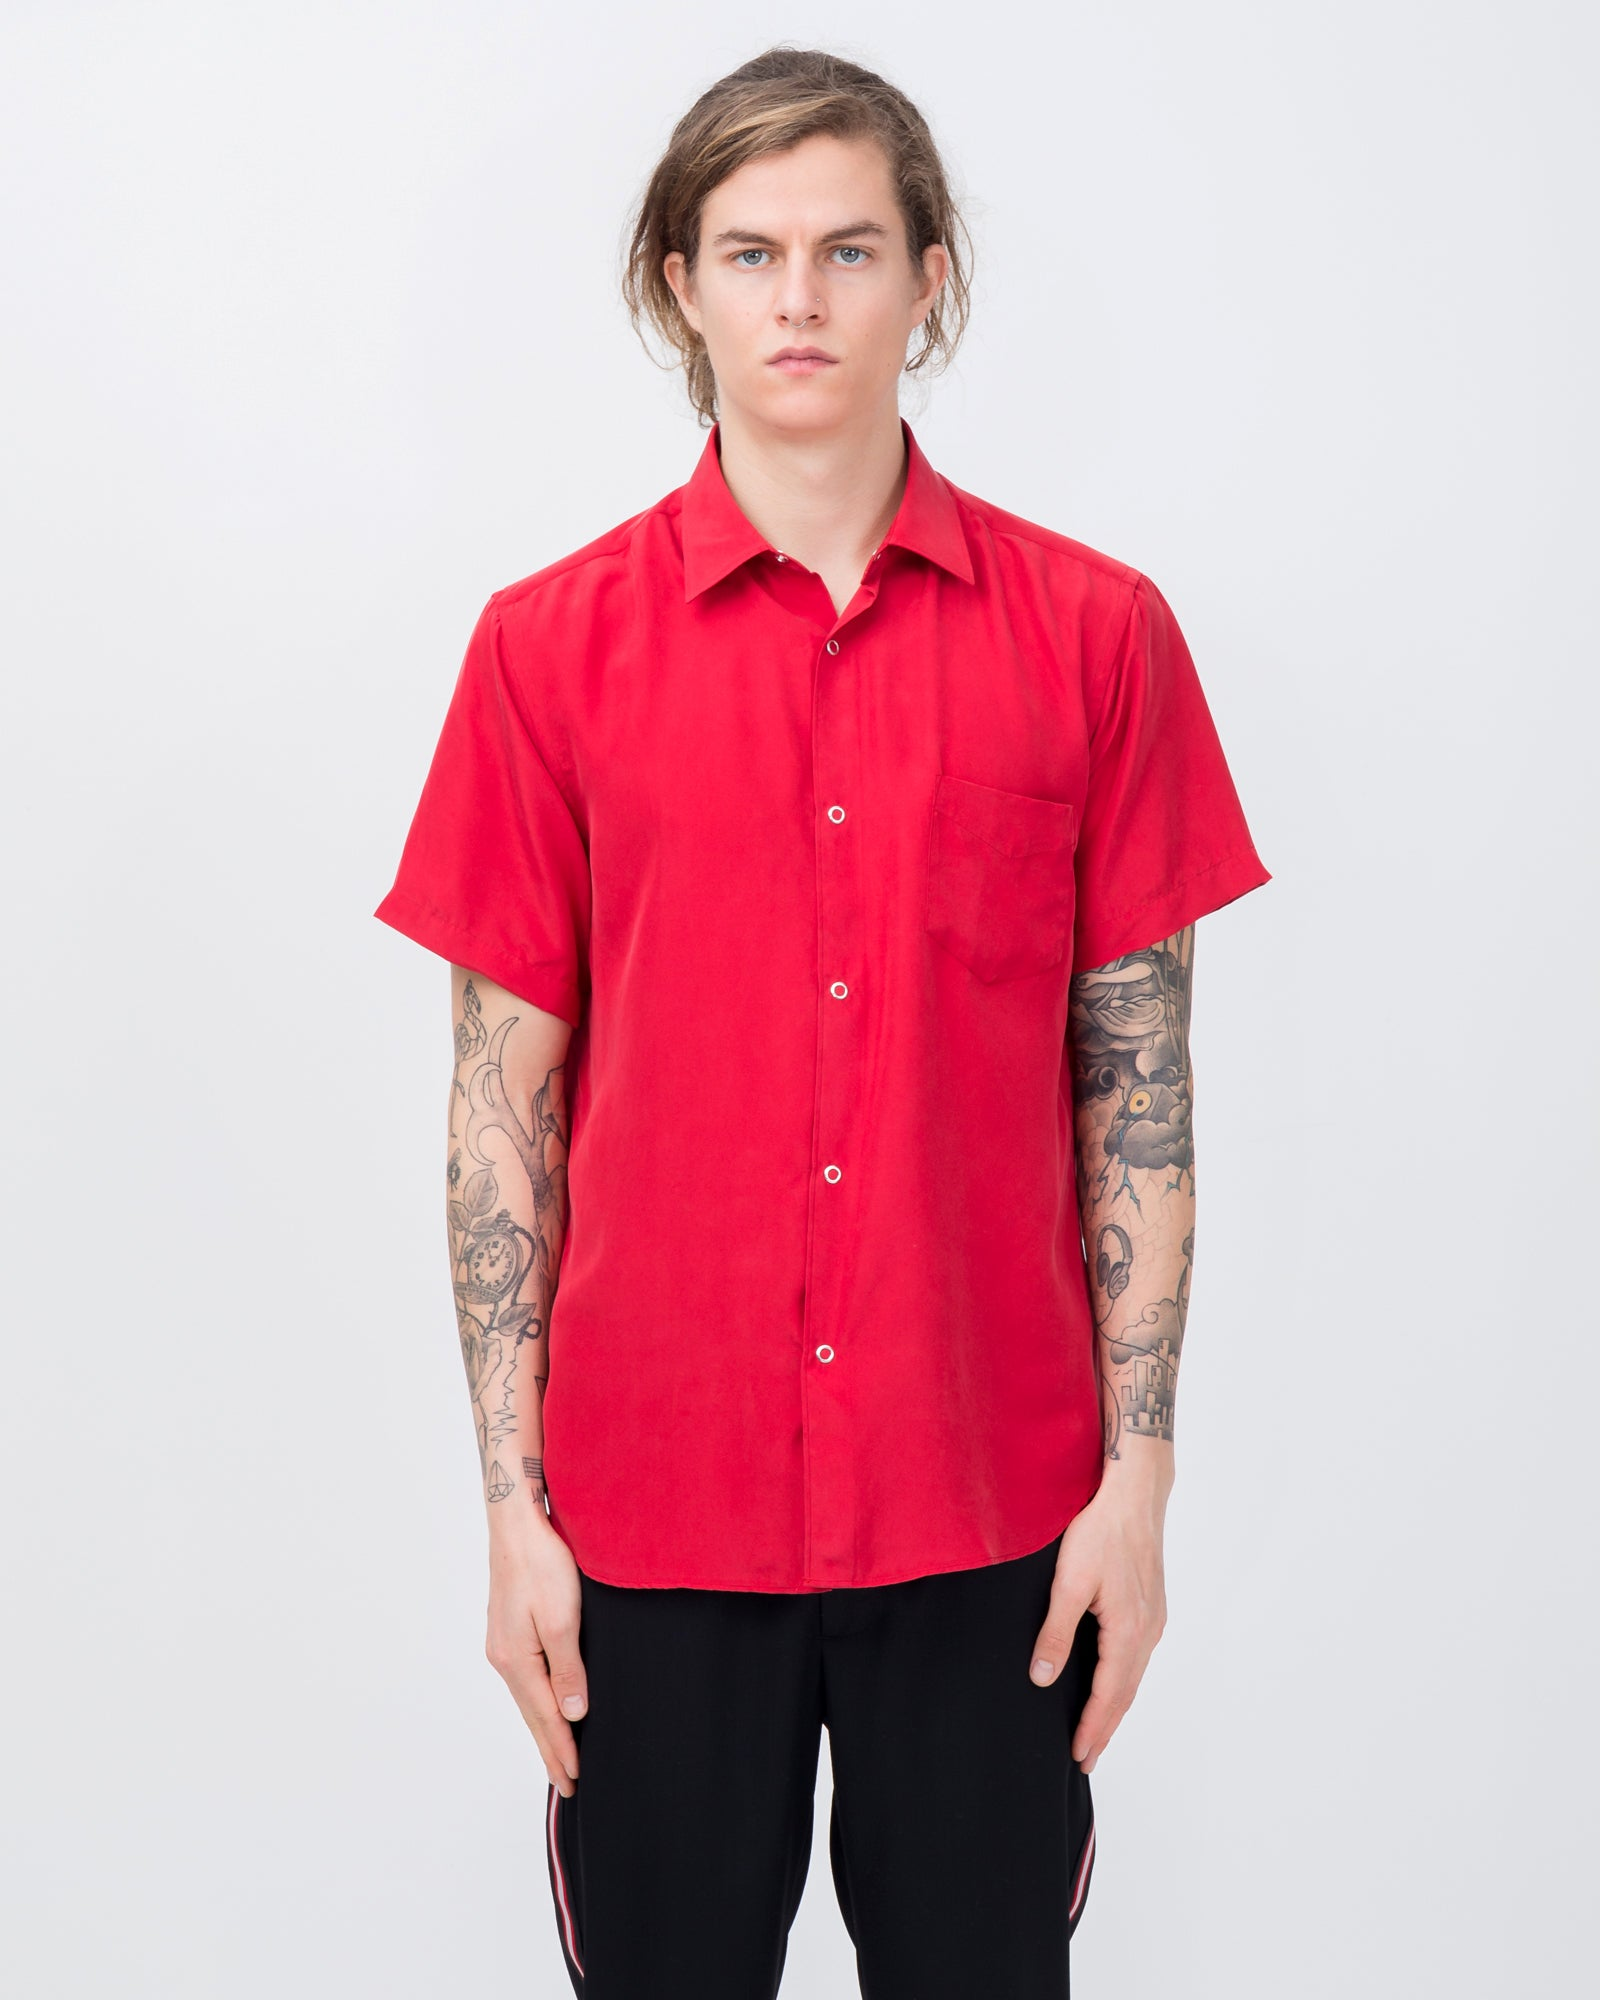 Short Sleeve Shirt in Diablo